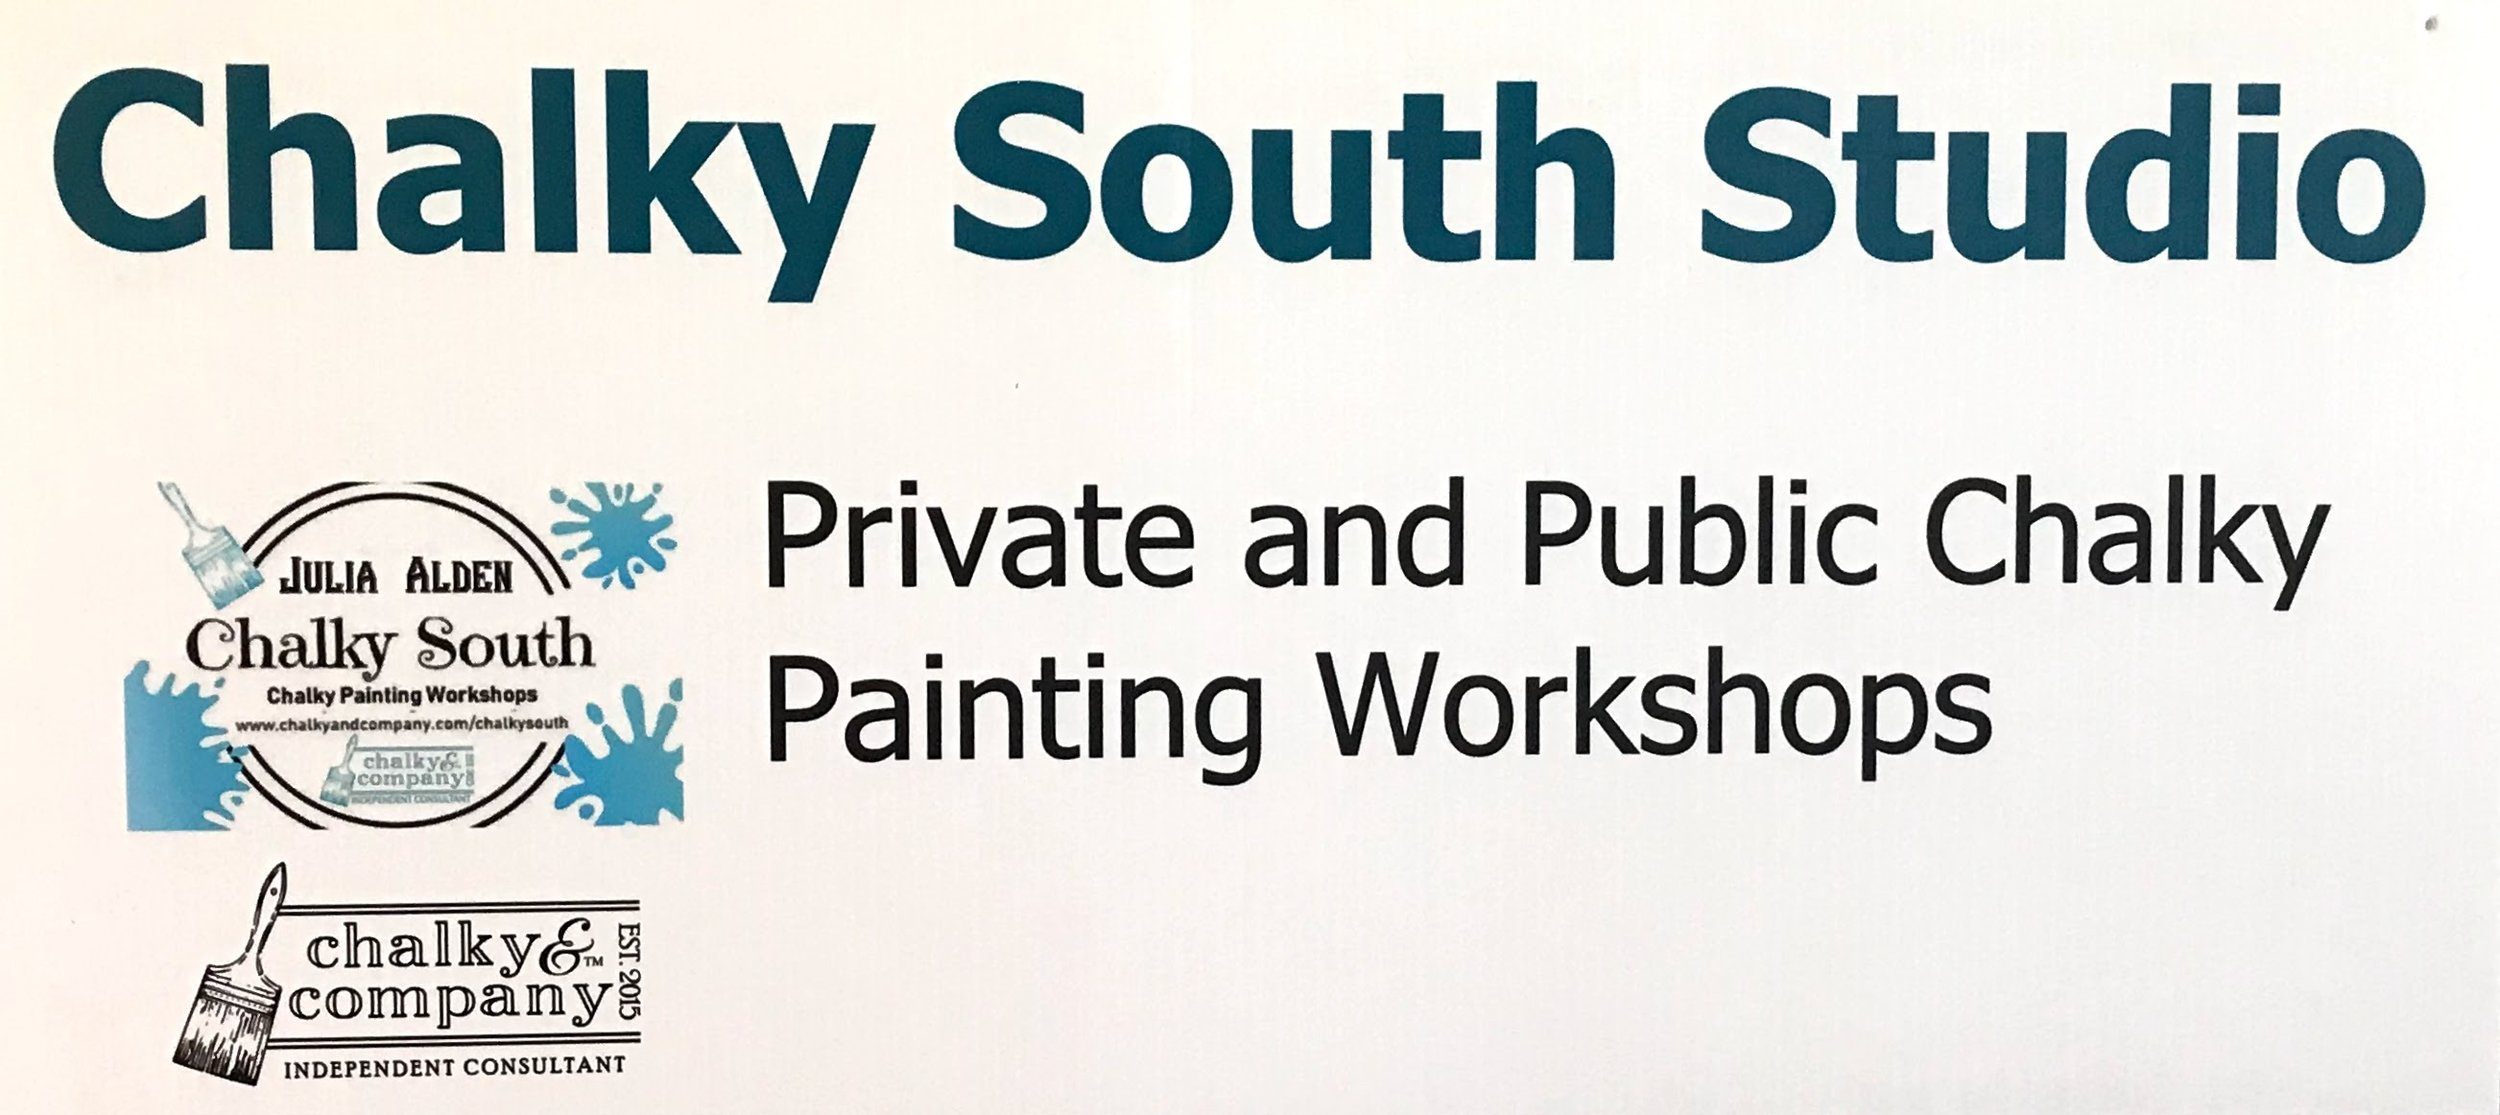 It's a great time Chalky Painting at the Chalky South Studio!